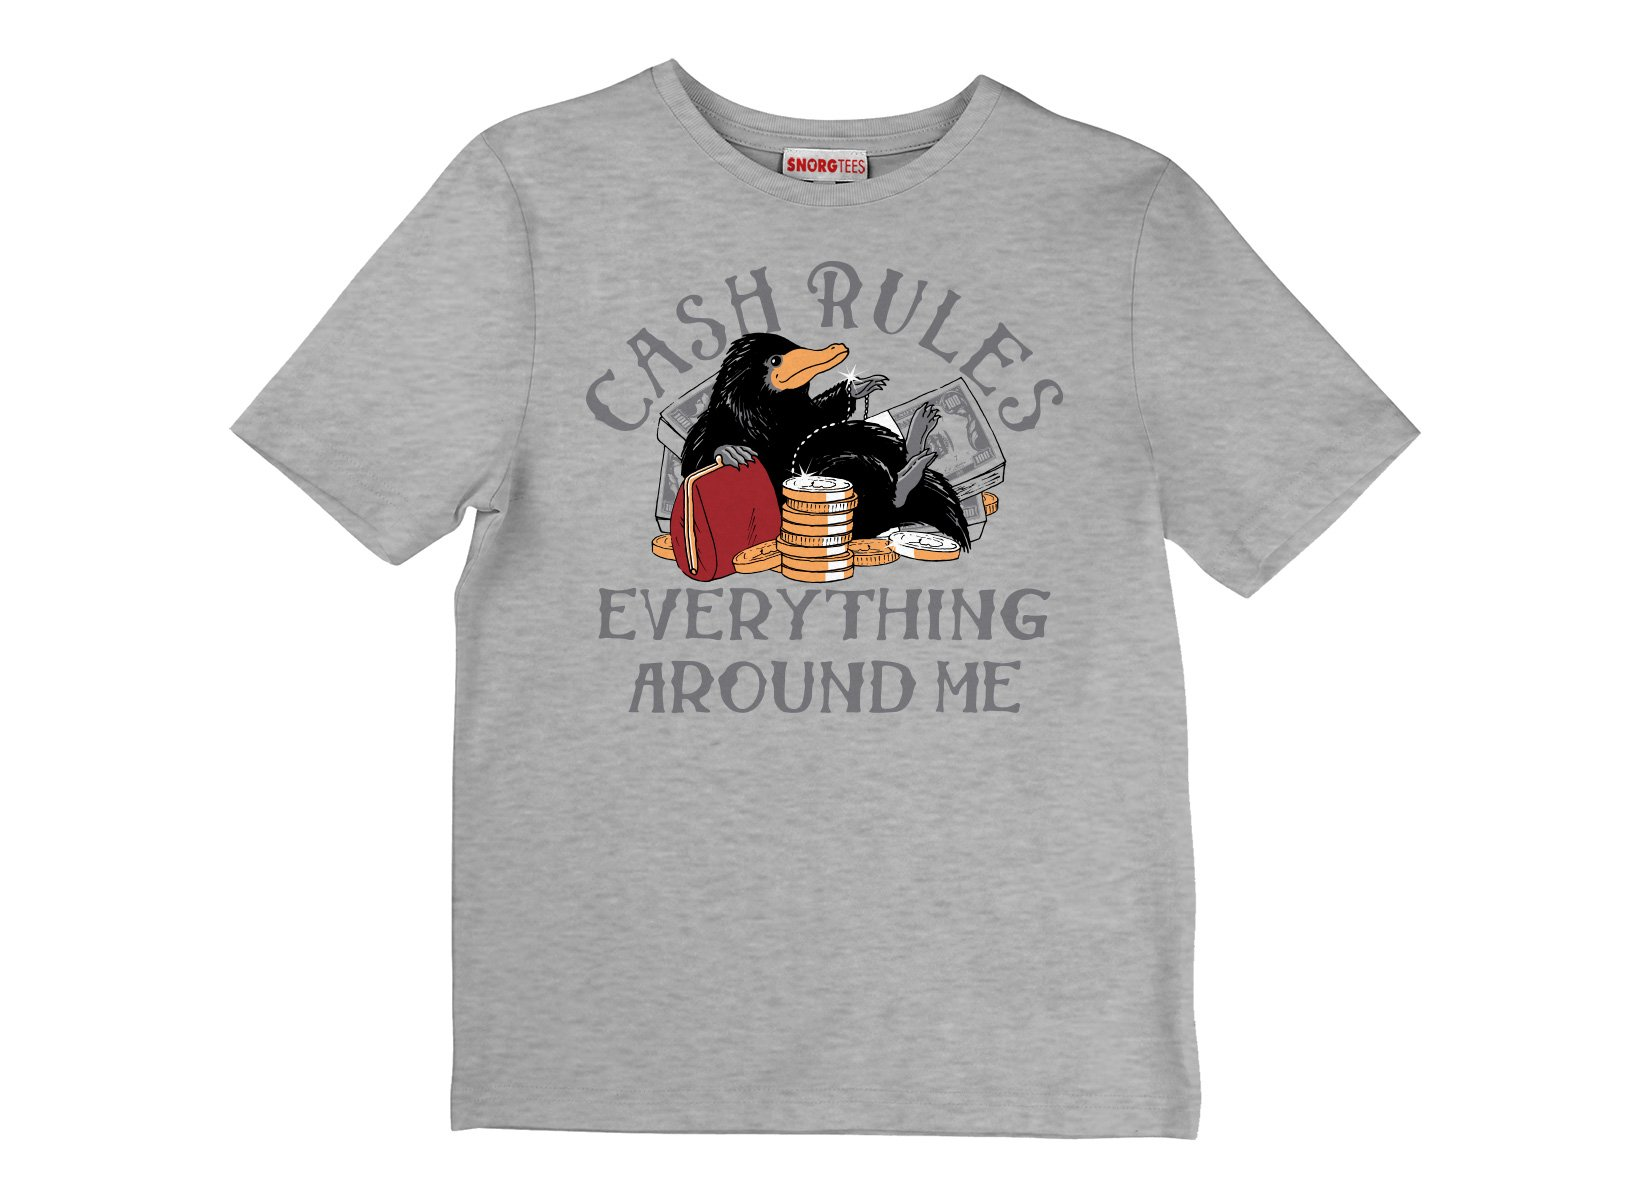 Cash Rules Everything Around Me on Kids T-Shirt